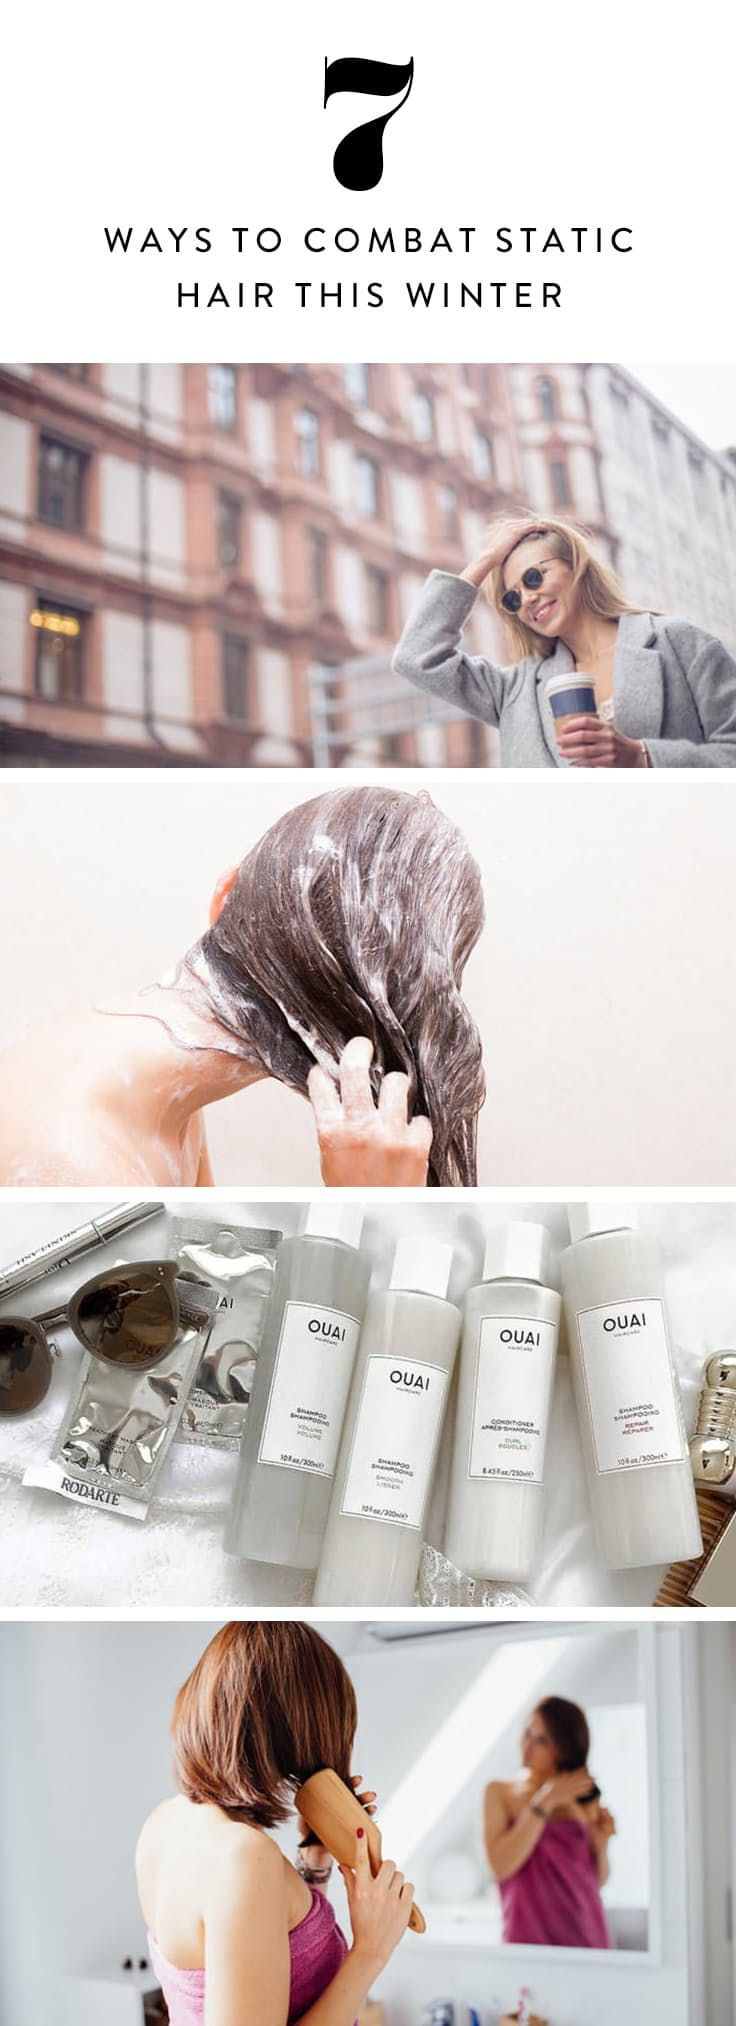 7 Ways to Combat Static Hair This Winter via @PureWow